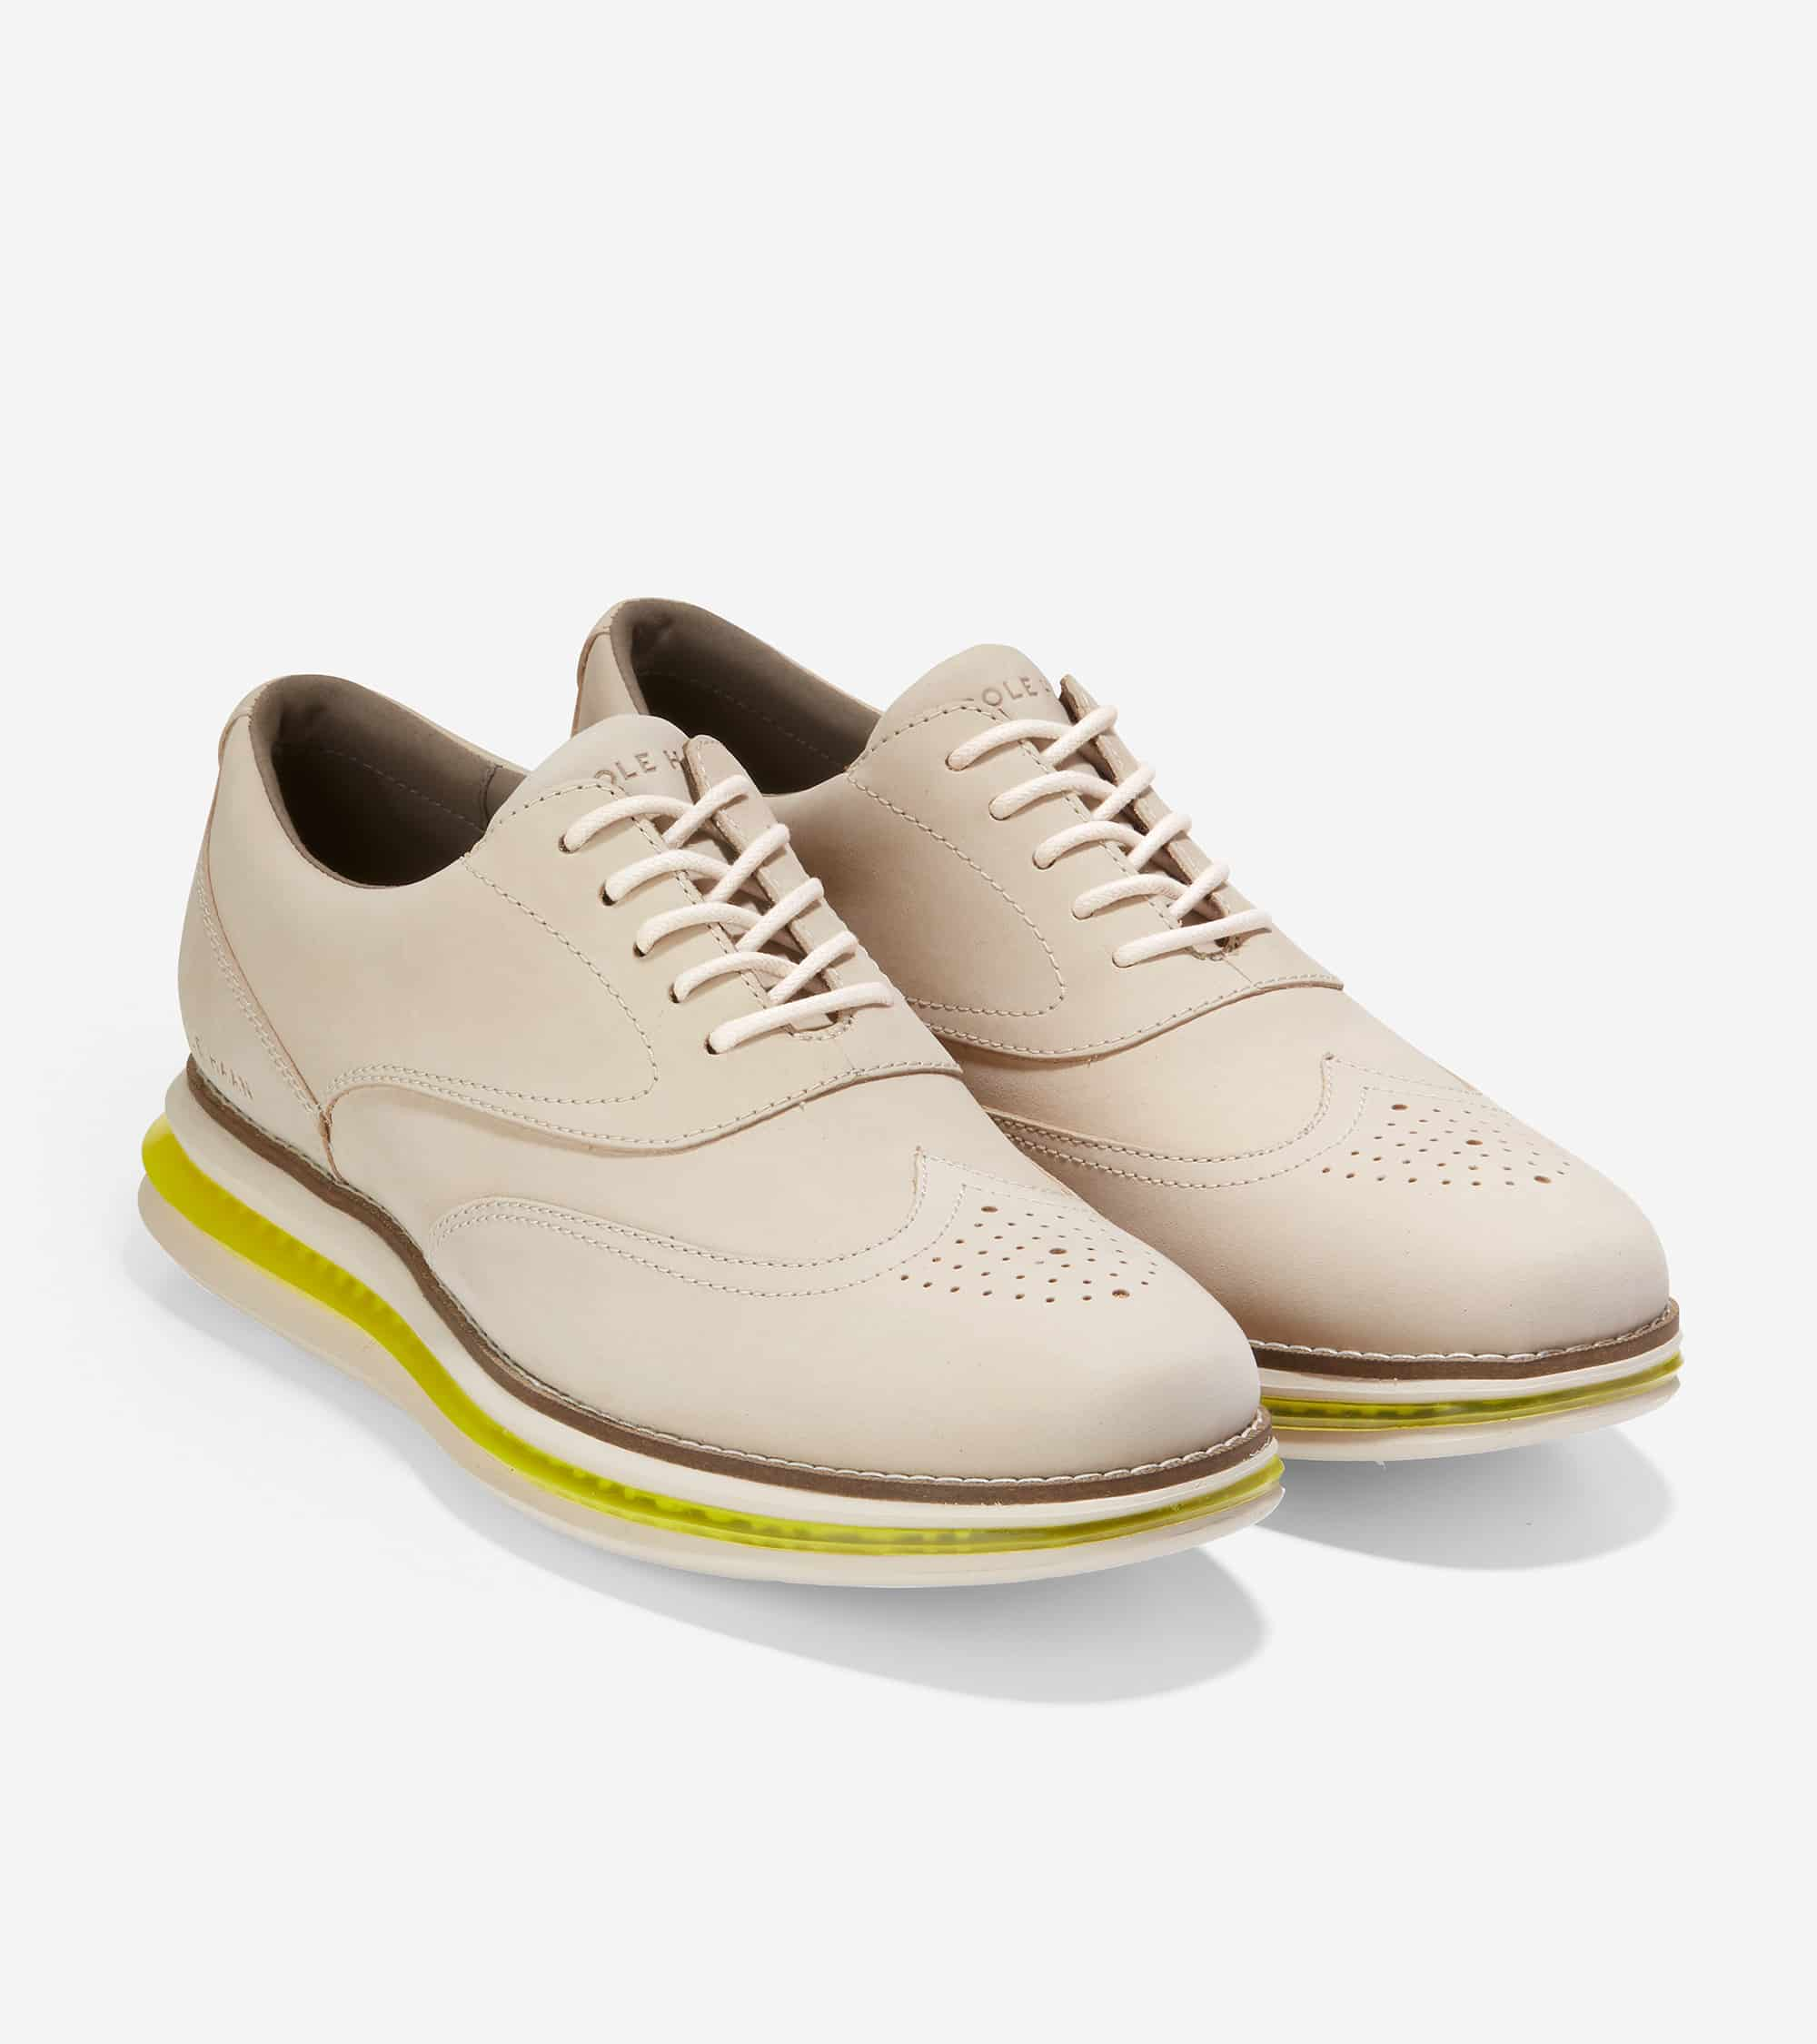 Cole Haan Øriginalgrand Cloudfeel Energy One Wgox Cement/Ivory-Safety Yellow